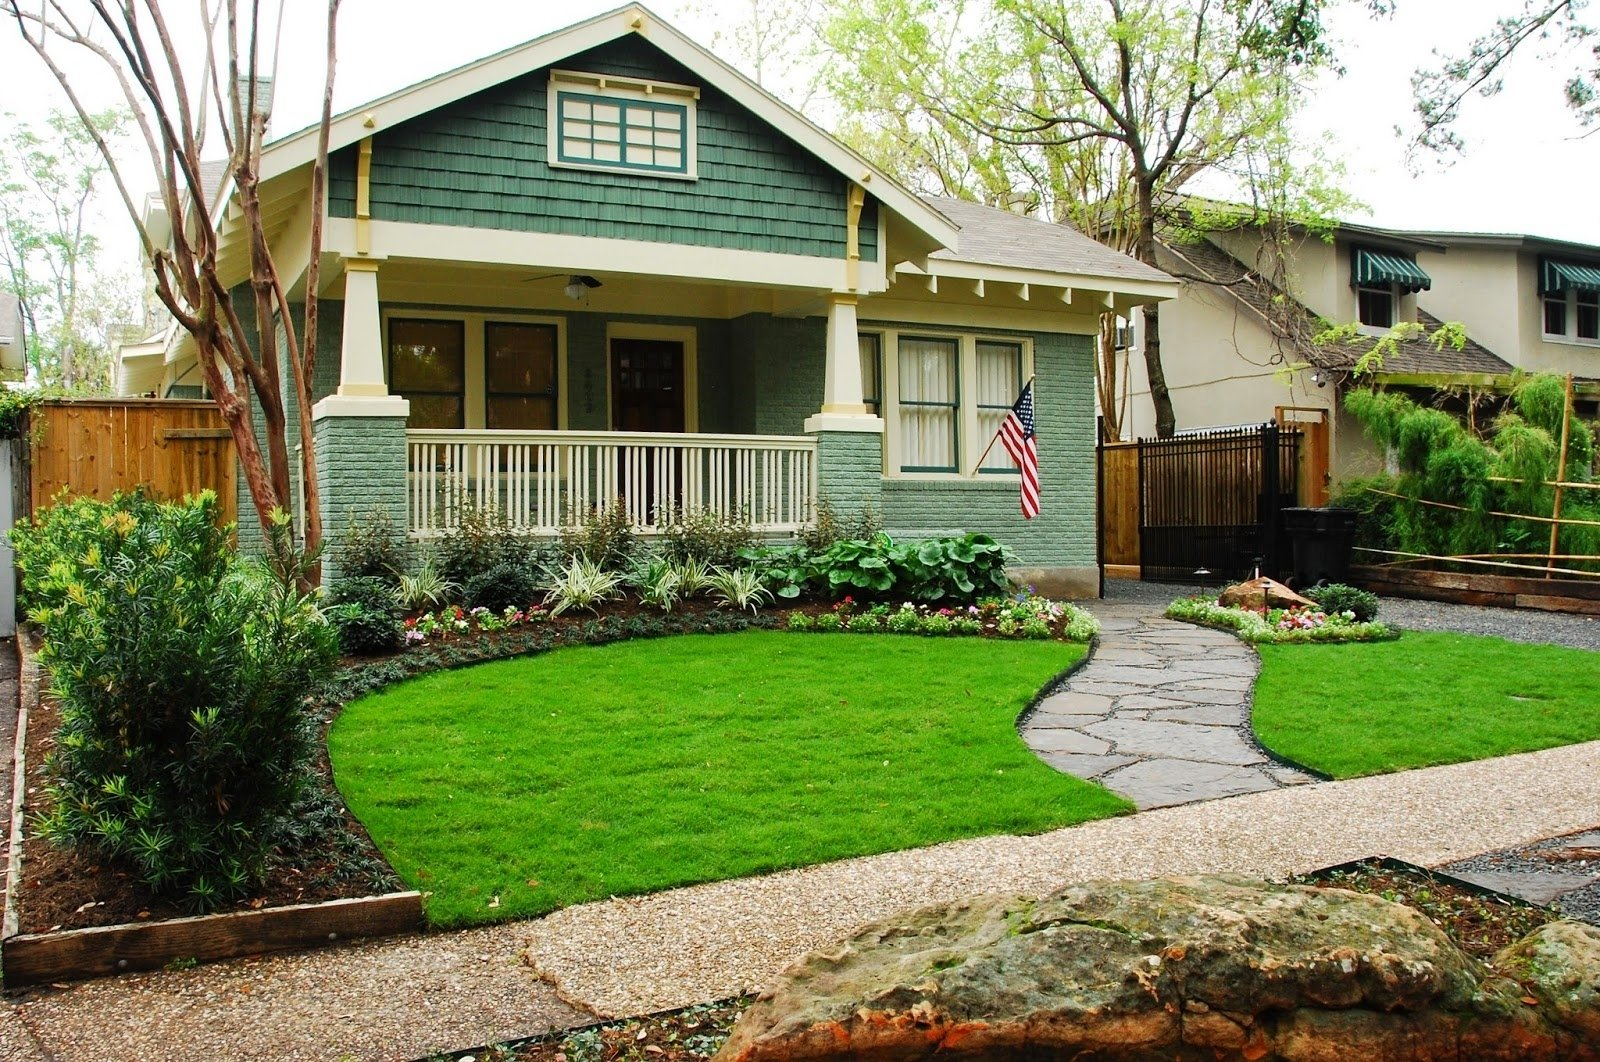 10 Stunning Small Front Yard Landscaping Ideas front yard landscaping ideas